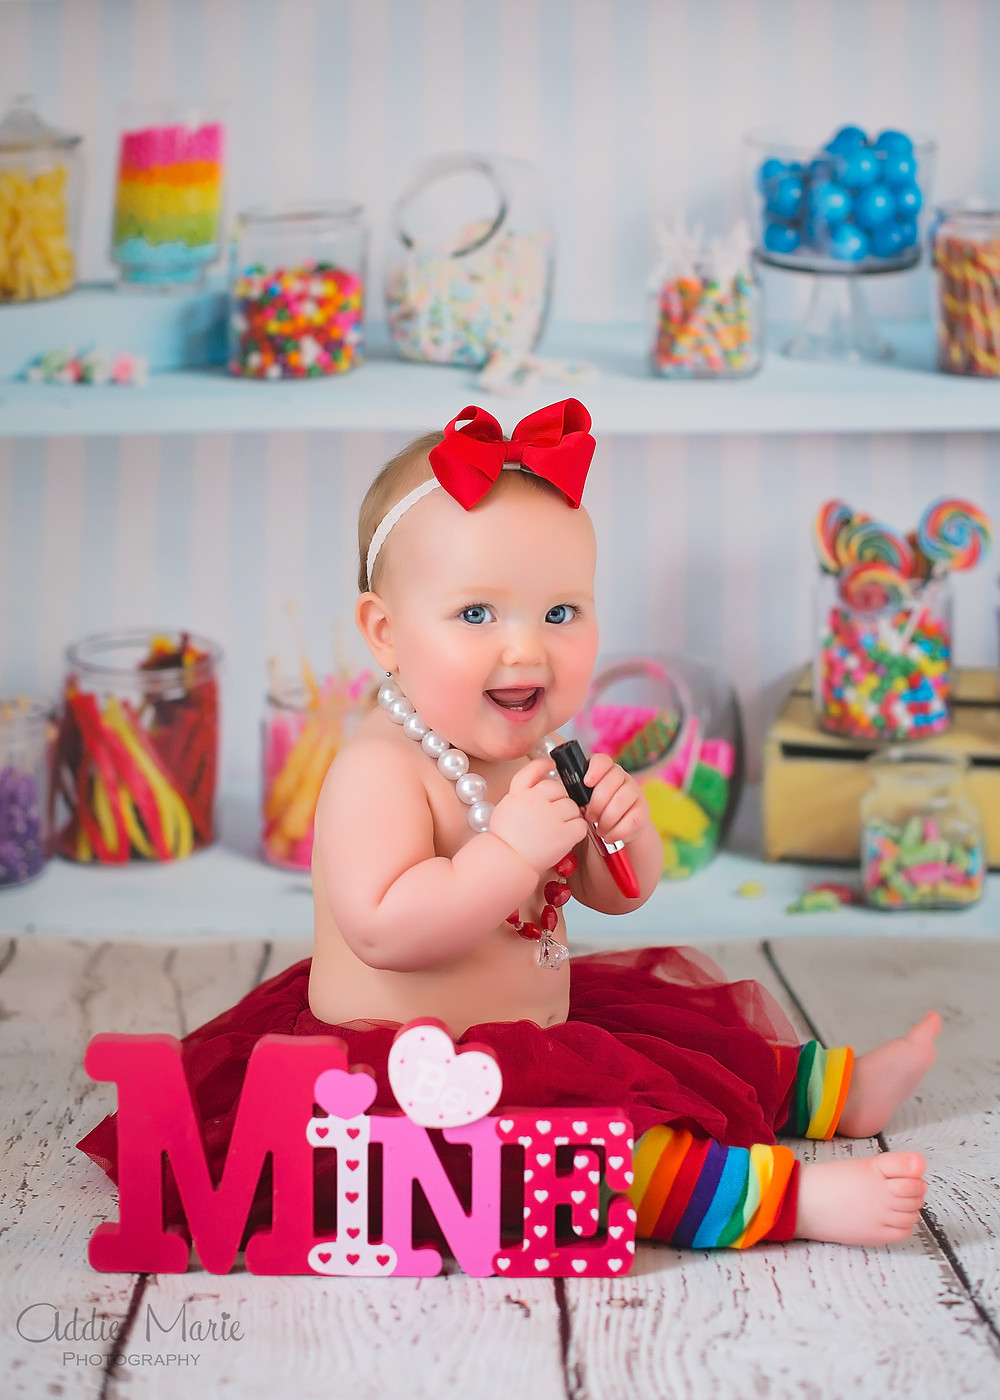 Orlando Valentine Mini Session - ADDIE MARIE PHOTOGRAPHY